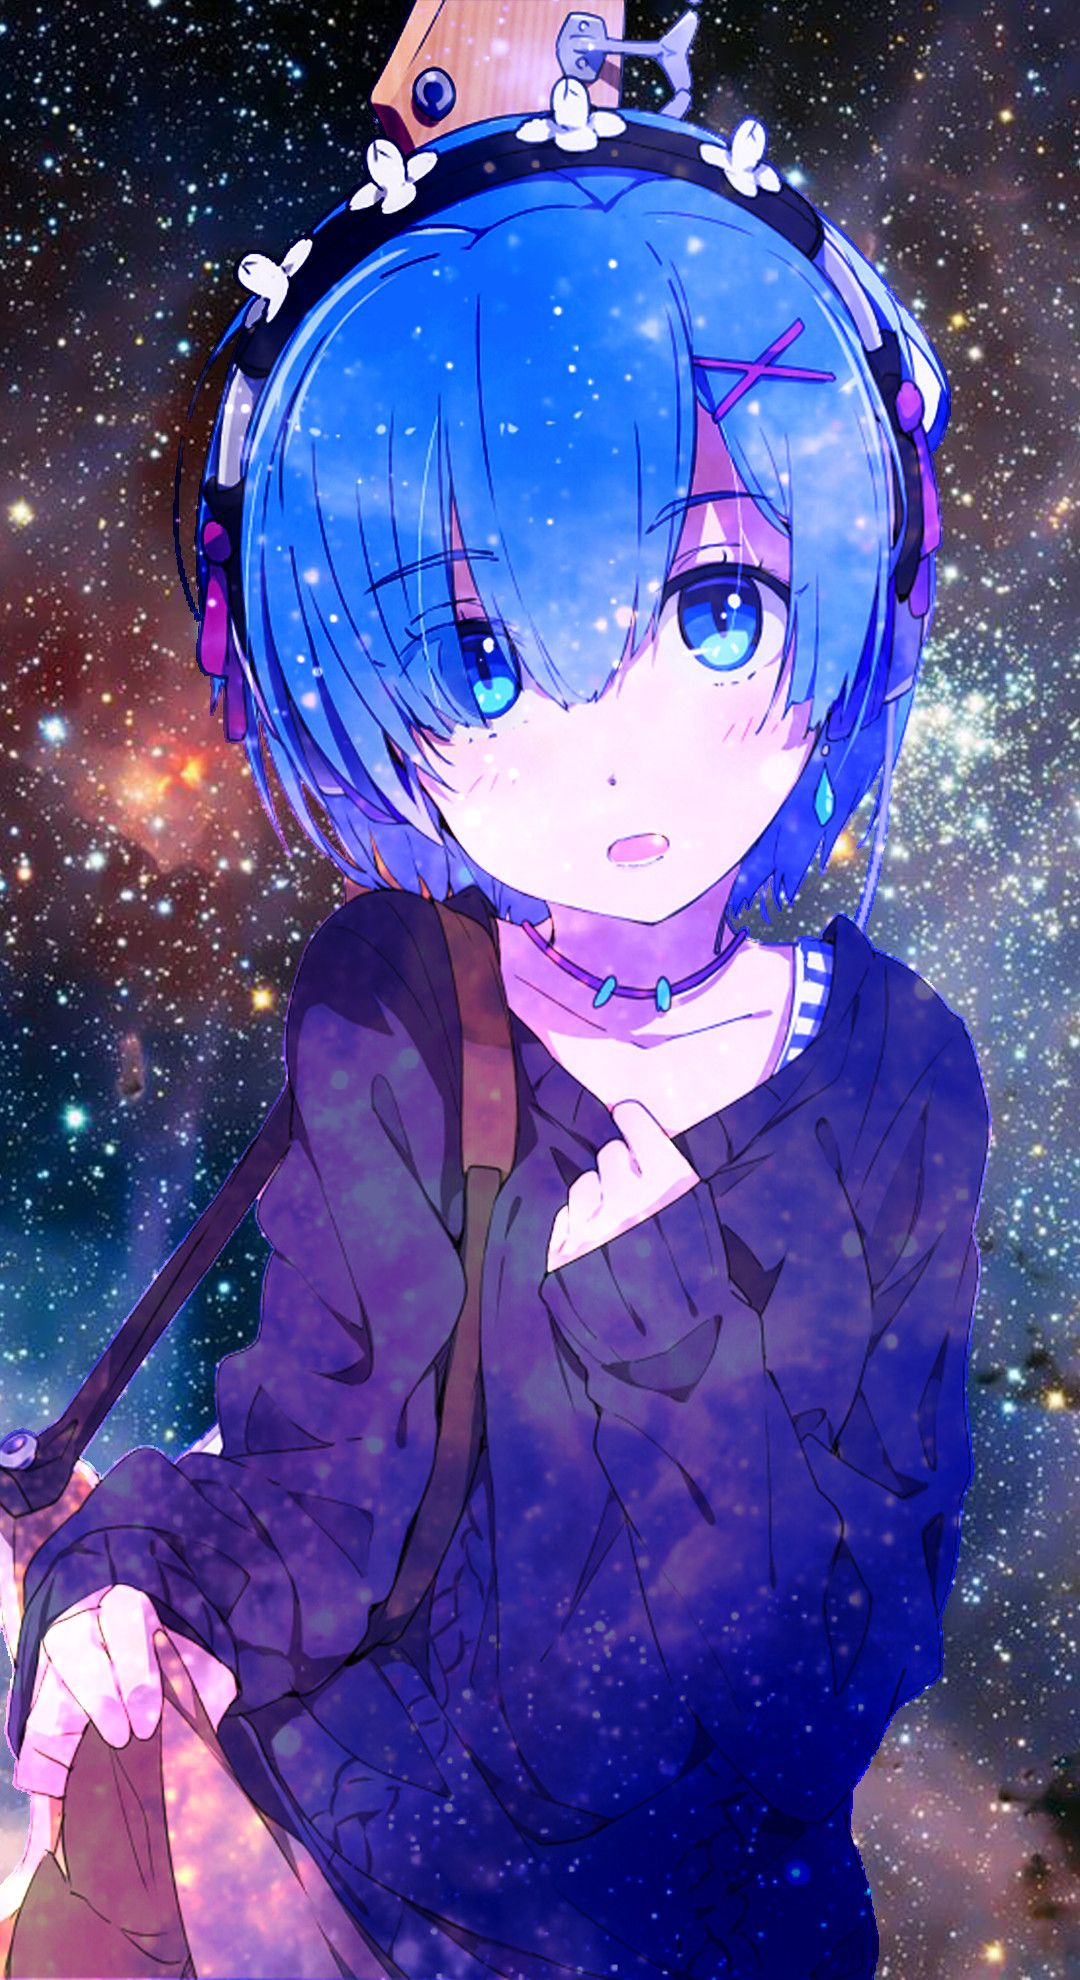 65 Anime Wallpaper For Phone Android Iphone Desktop Hd